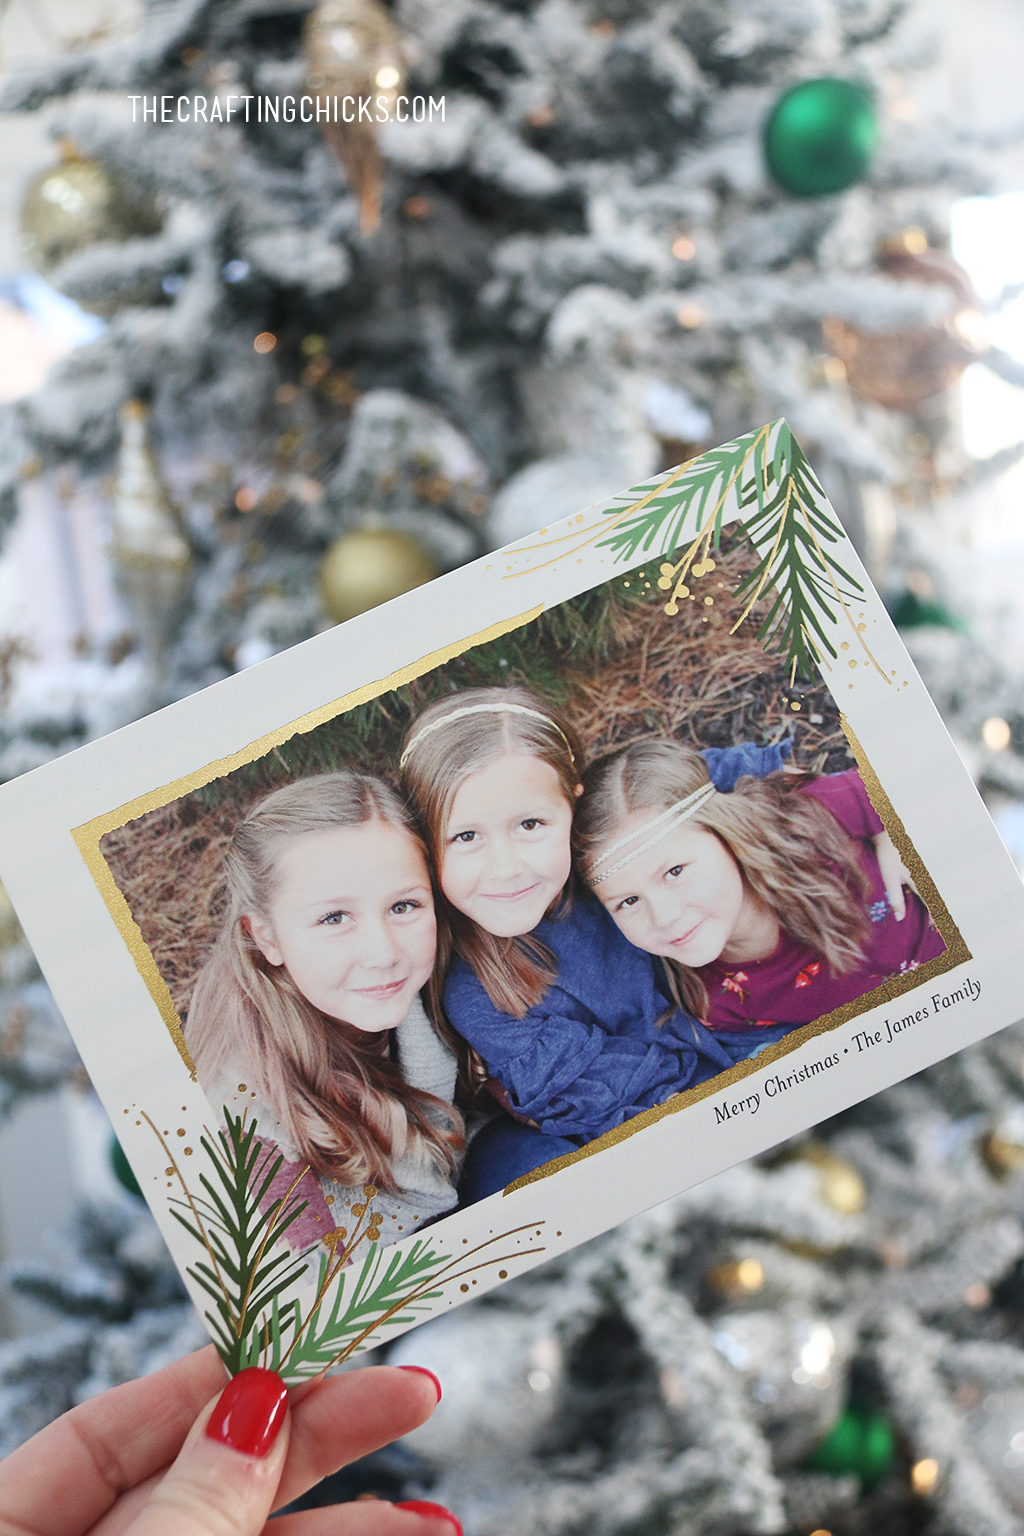 Holiday Photo Cards 2017! Each card was hand picked and made especially for each family. They are custom Christmas cards with foil printing. We think you'll love them as much as we do.